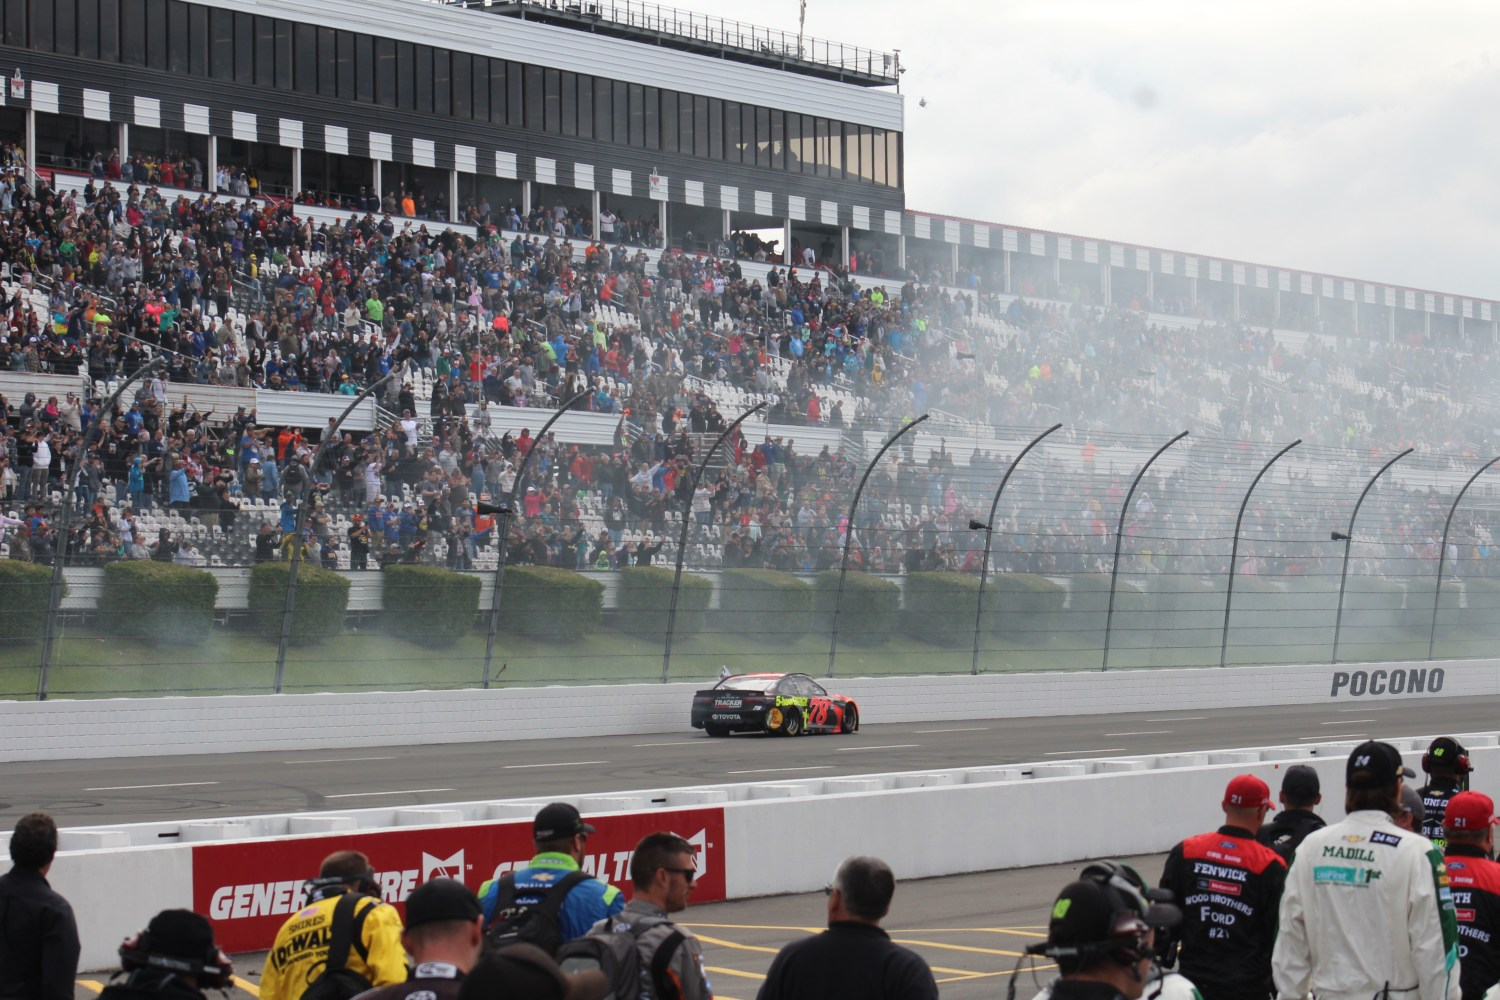 Truex passes by Pocono grandstands after victory